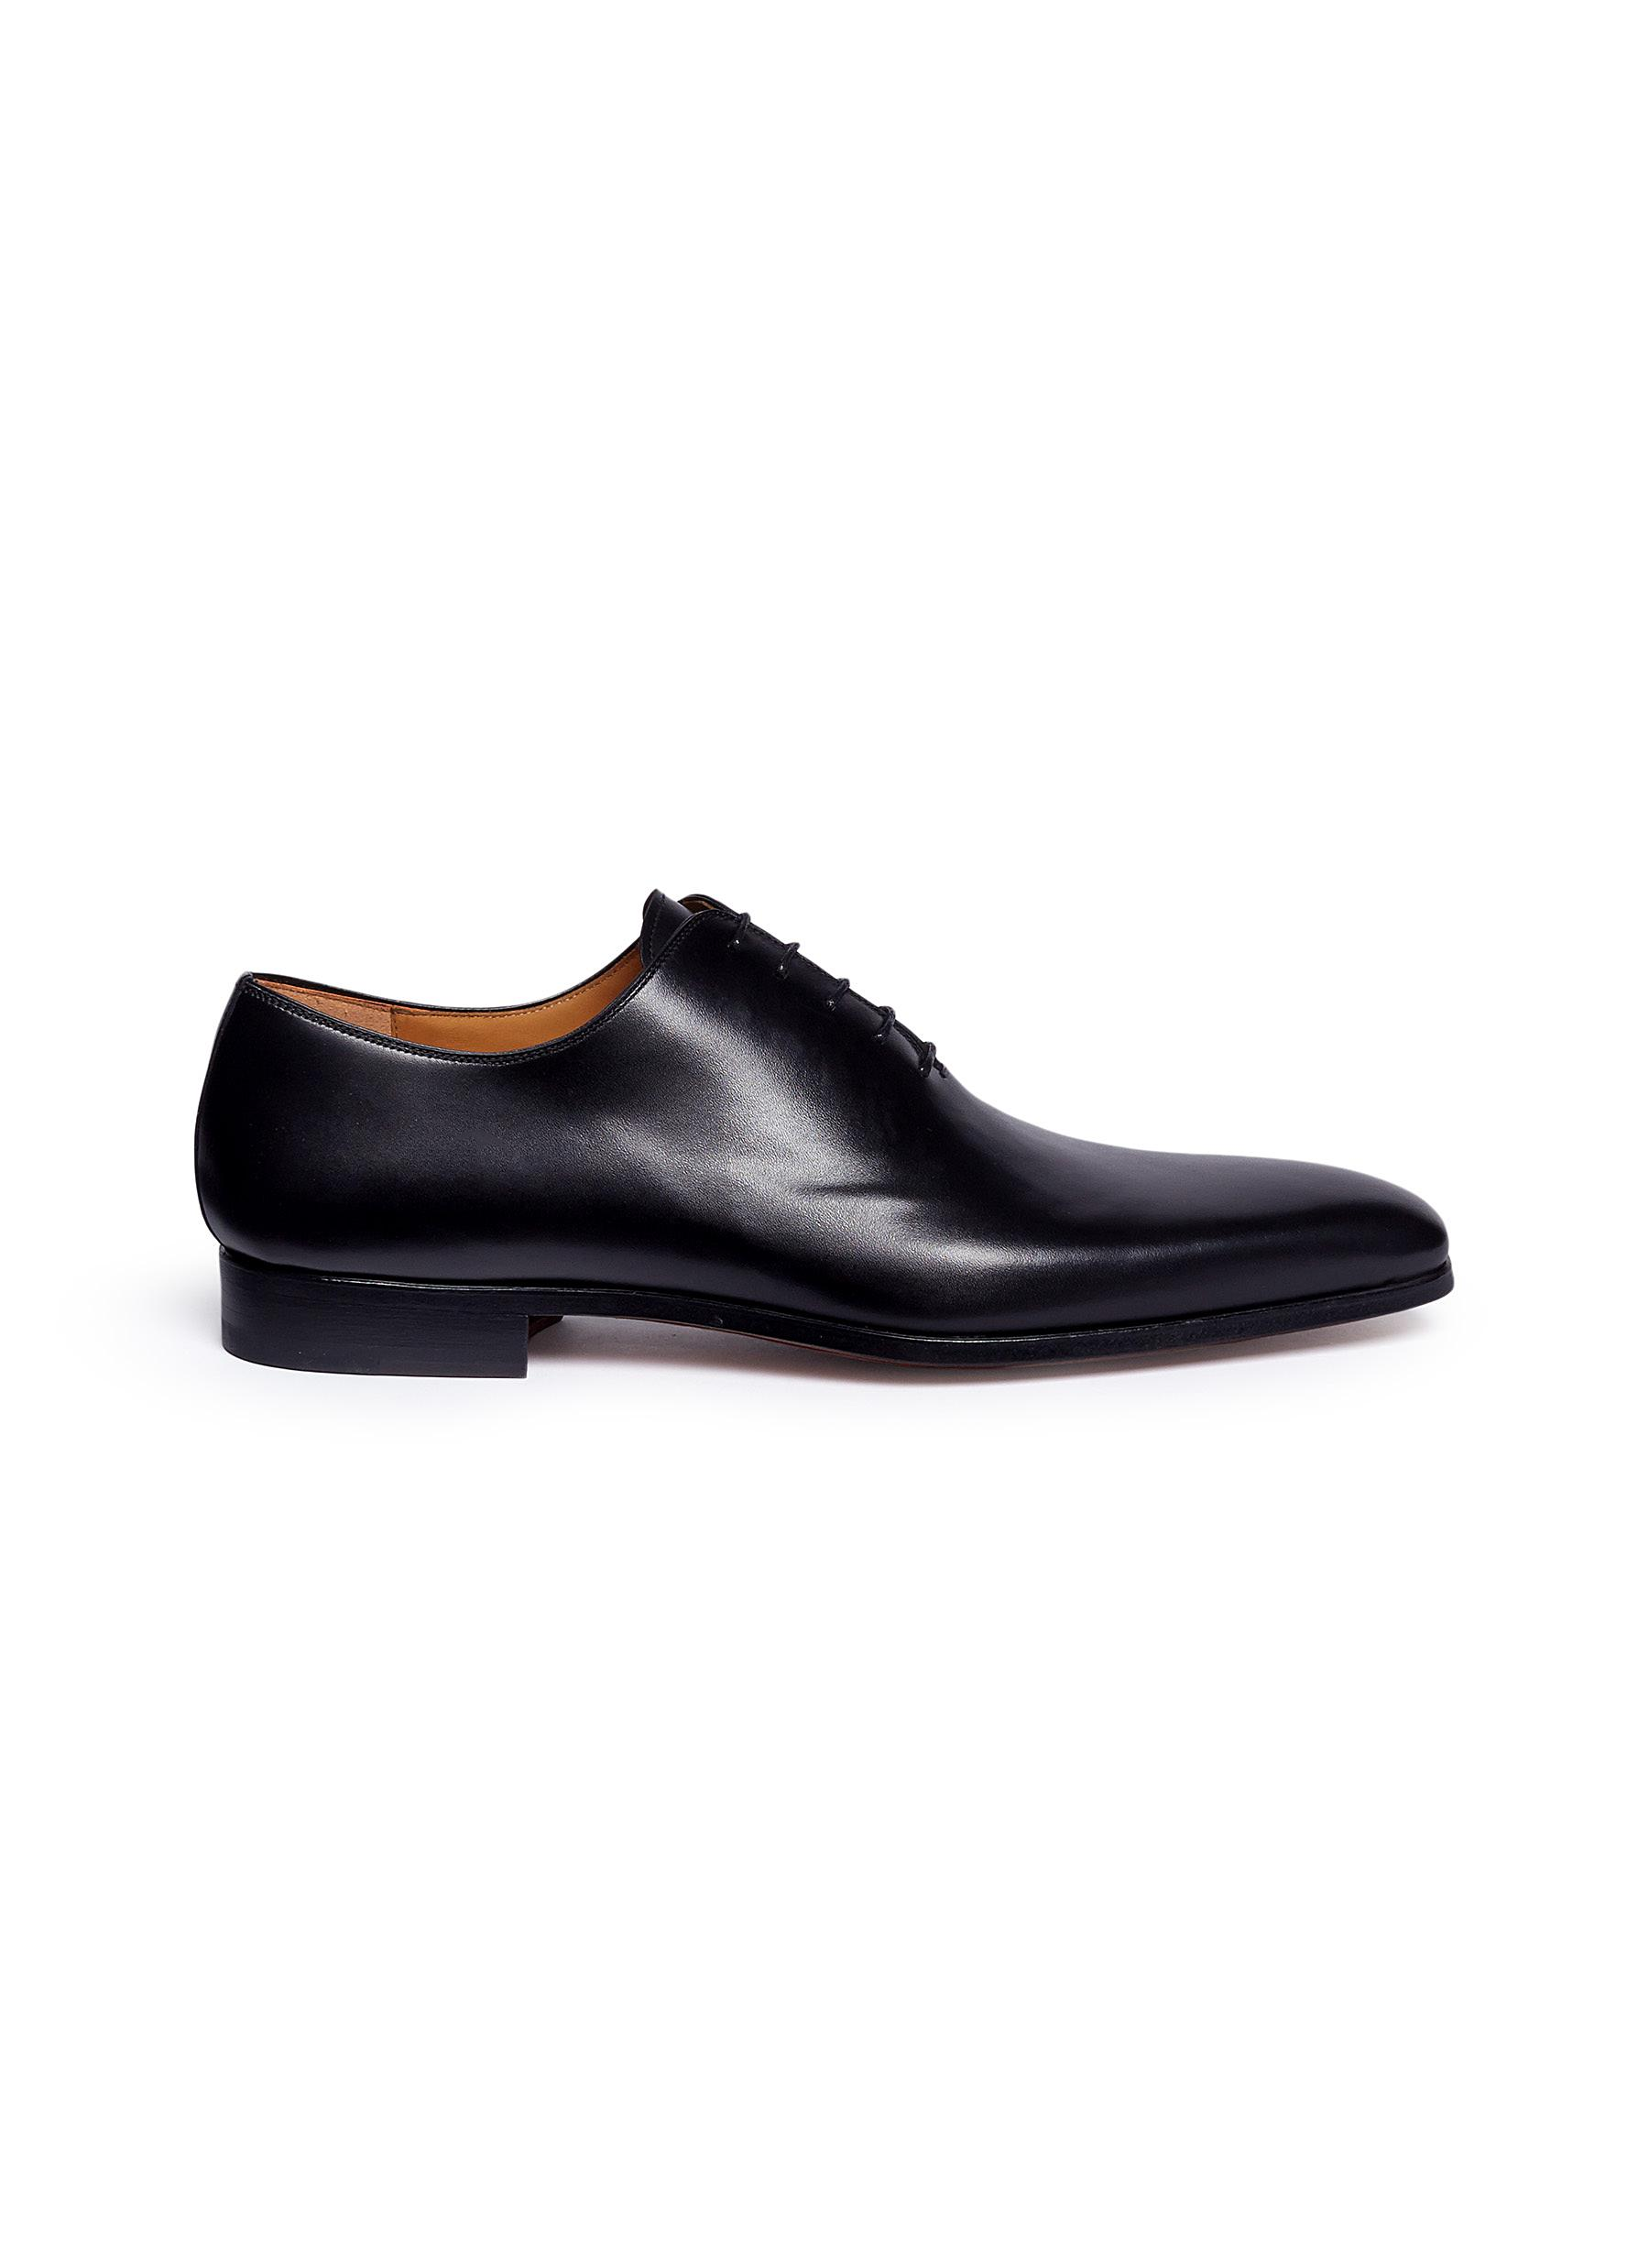 Leather Oxfords by Magnanni